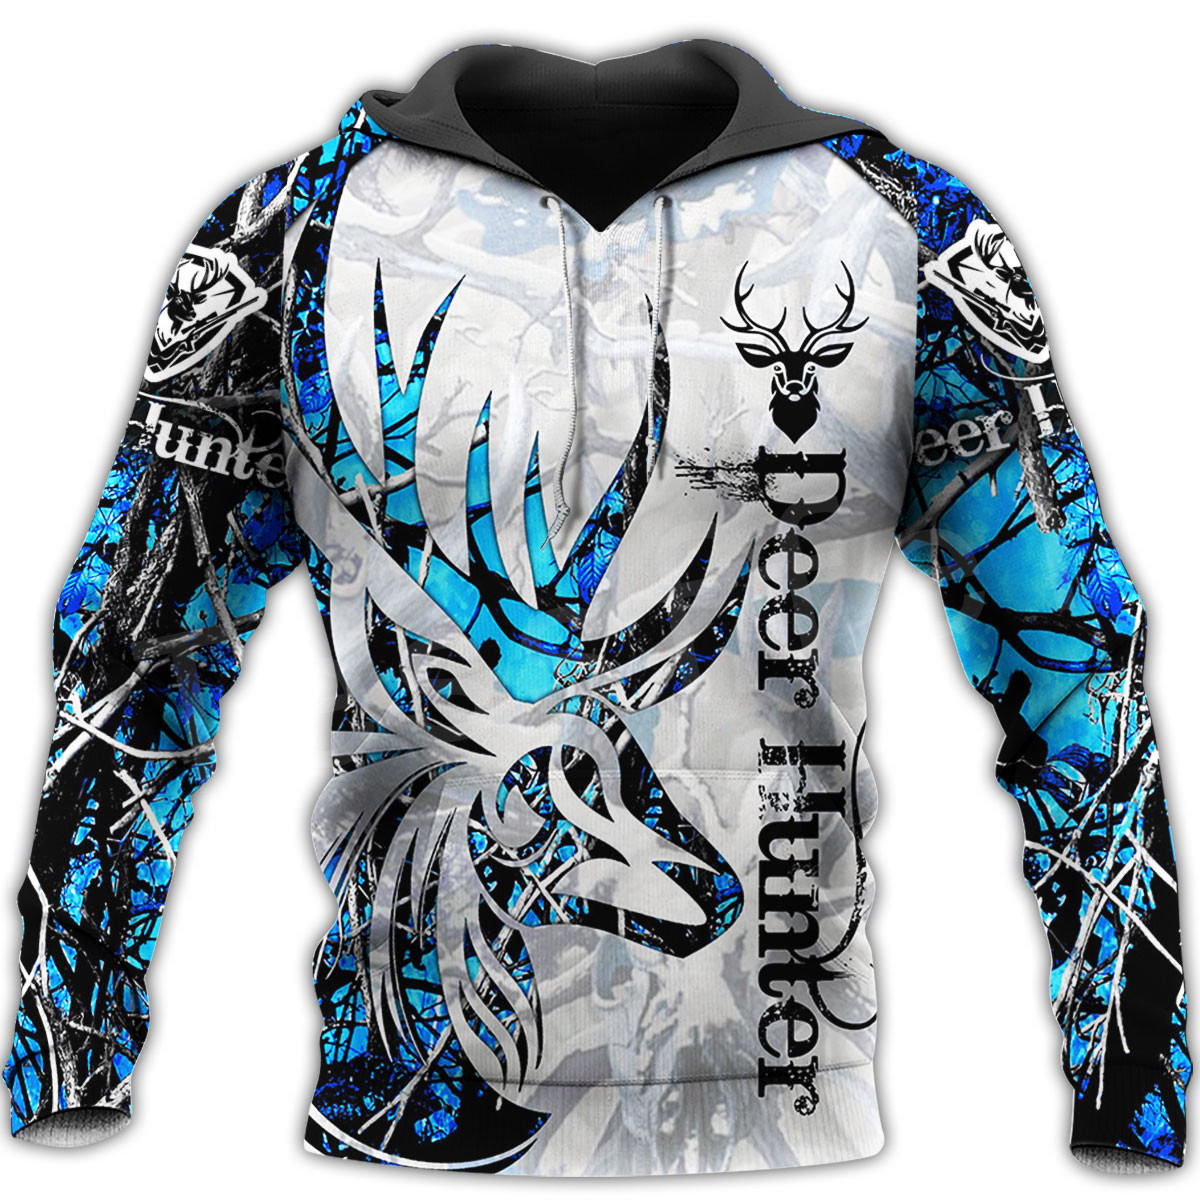 Tessffel Animal Bow Deer Hunter Hunting Camo Tracksuit Pullover NewFashion Unisex 3DPrint Sweatshirts/Hoodies/zipper/Jacket S-12